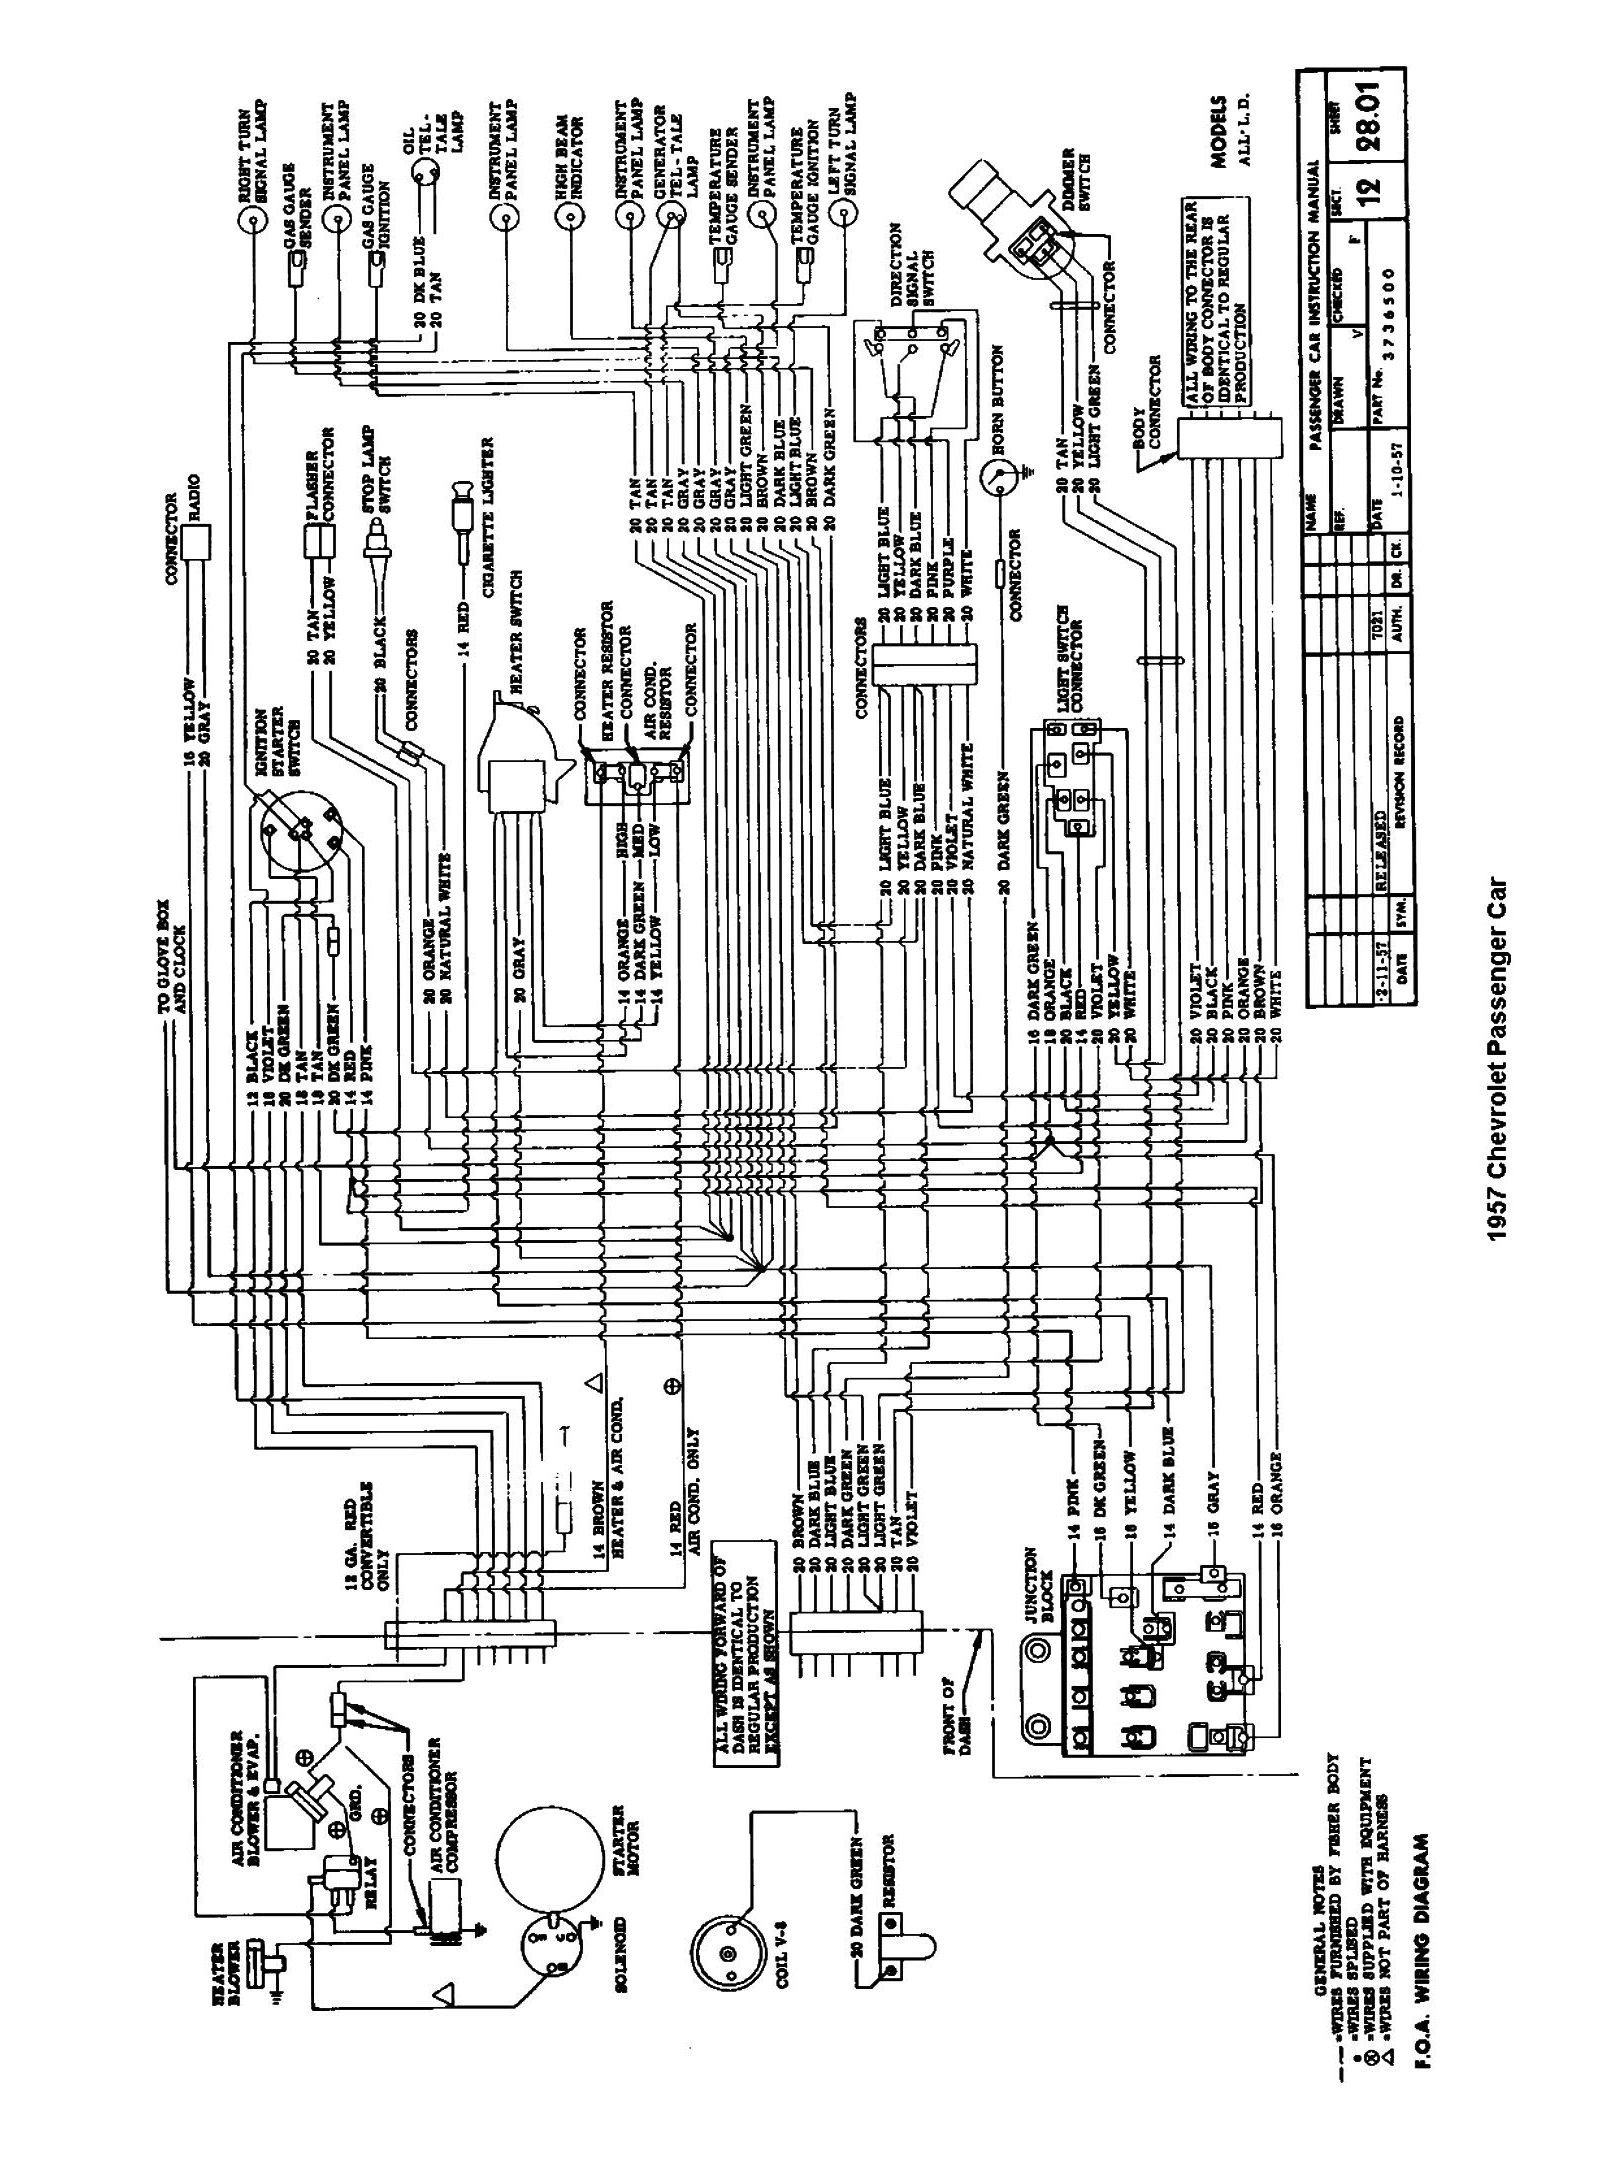 hight resolution of 1957 gmc truck wiring diagrams wiring diagram third level rh 16 16 jacobwinterstein com gmc truck electrical wiring diagrams gmc radio wiring diagram